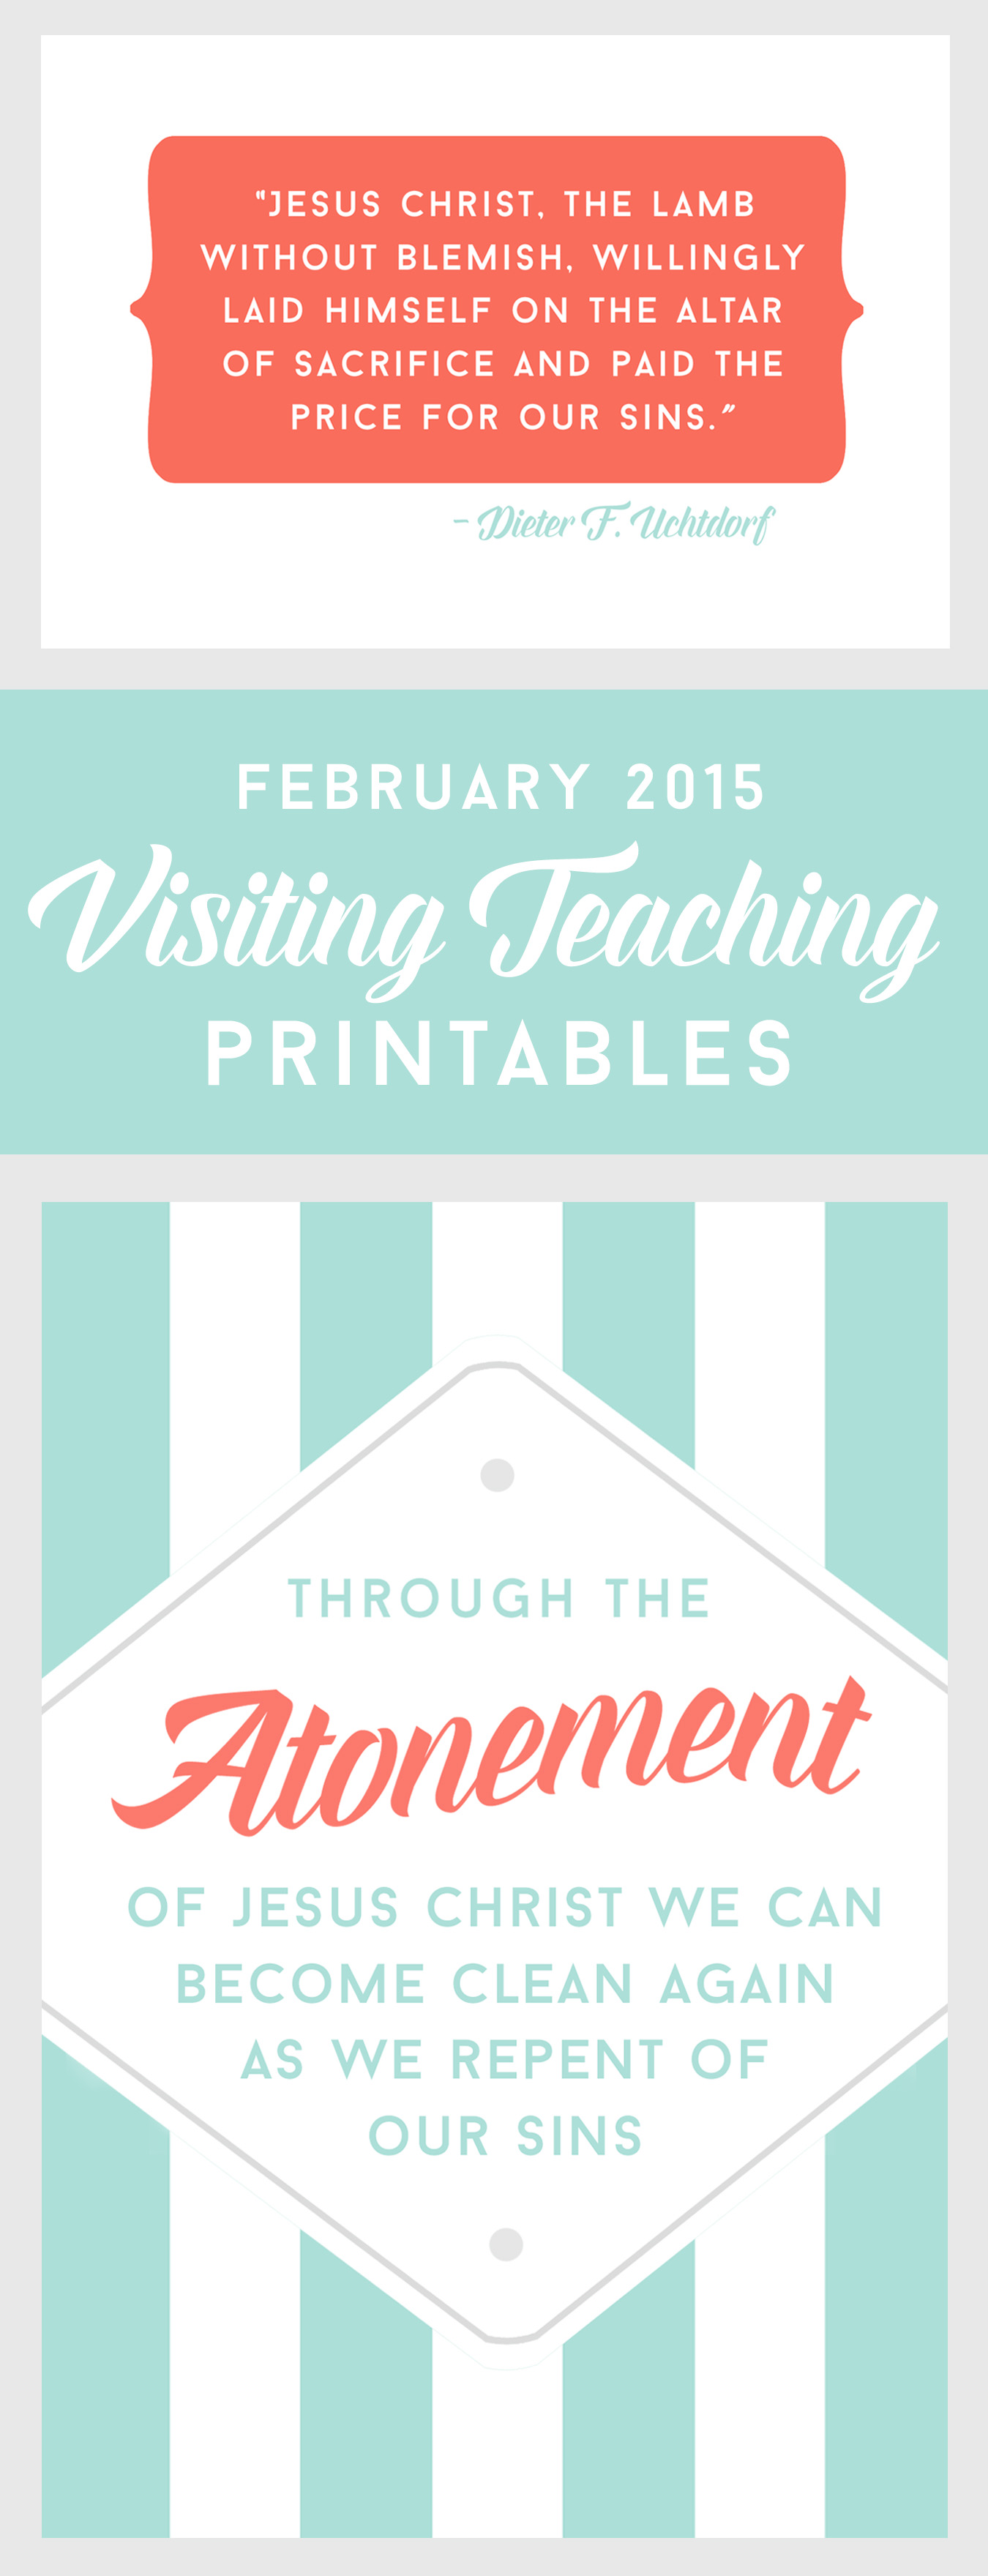 Free printables focused on the February 2015 LDS Visiting Teaching message.